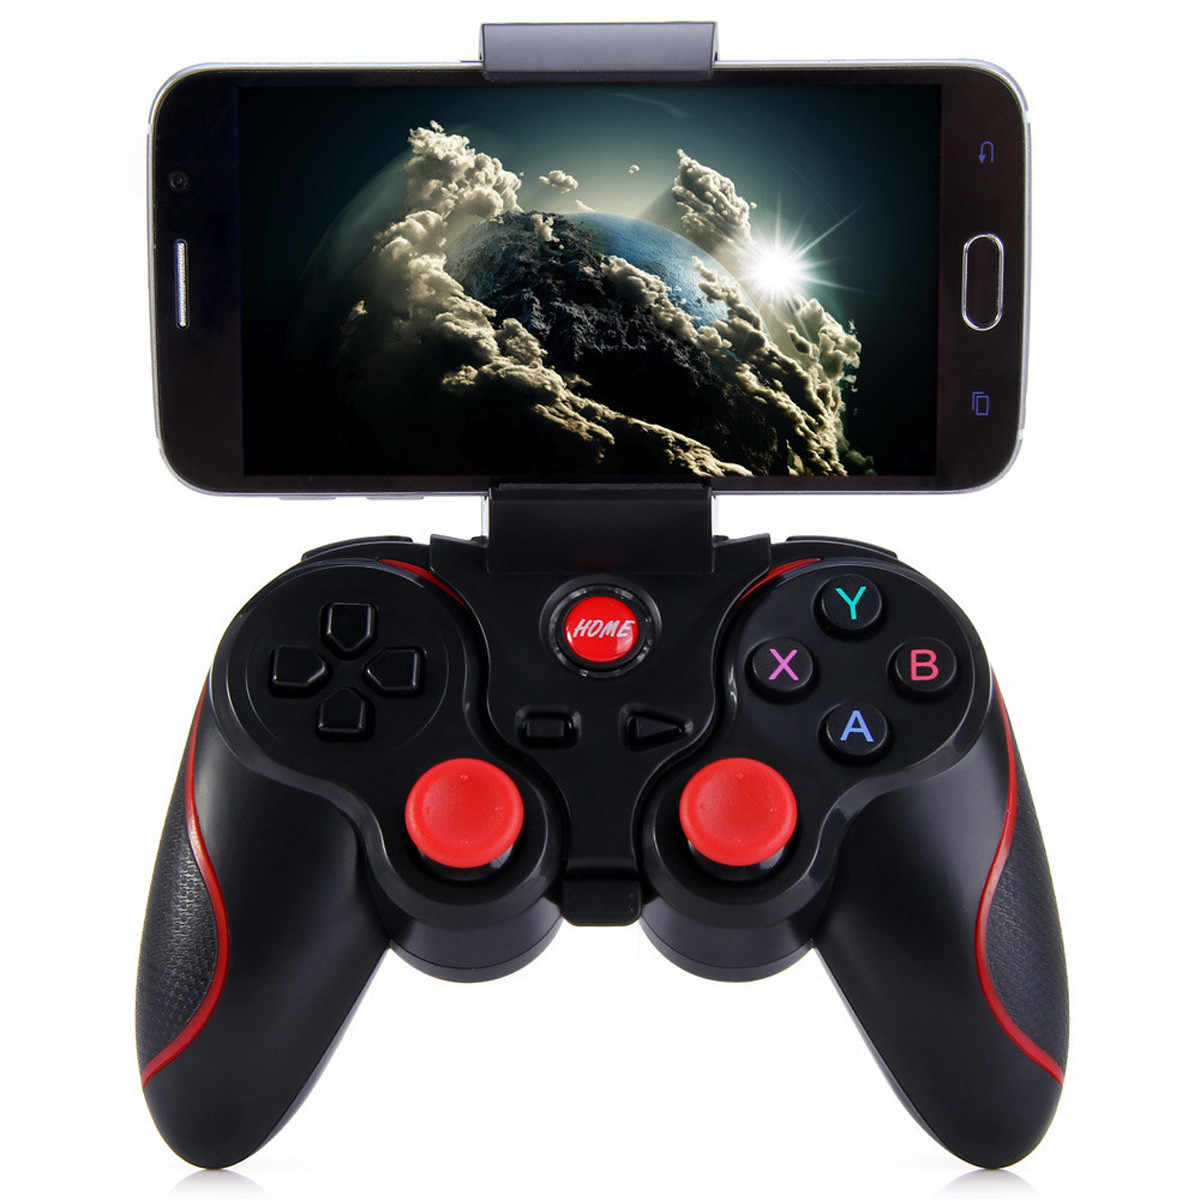 Wireless Bluetooth gamepad T3 Game Controller Joystick arcade classic retro game For andriod IOS Mobile phone computer